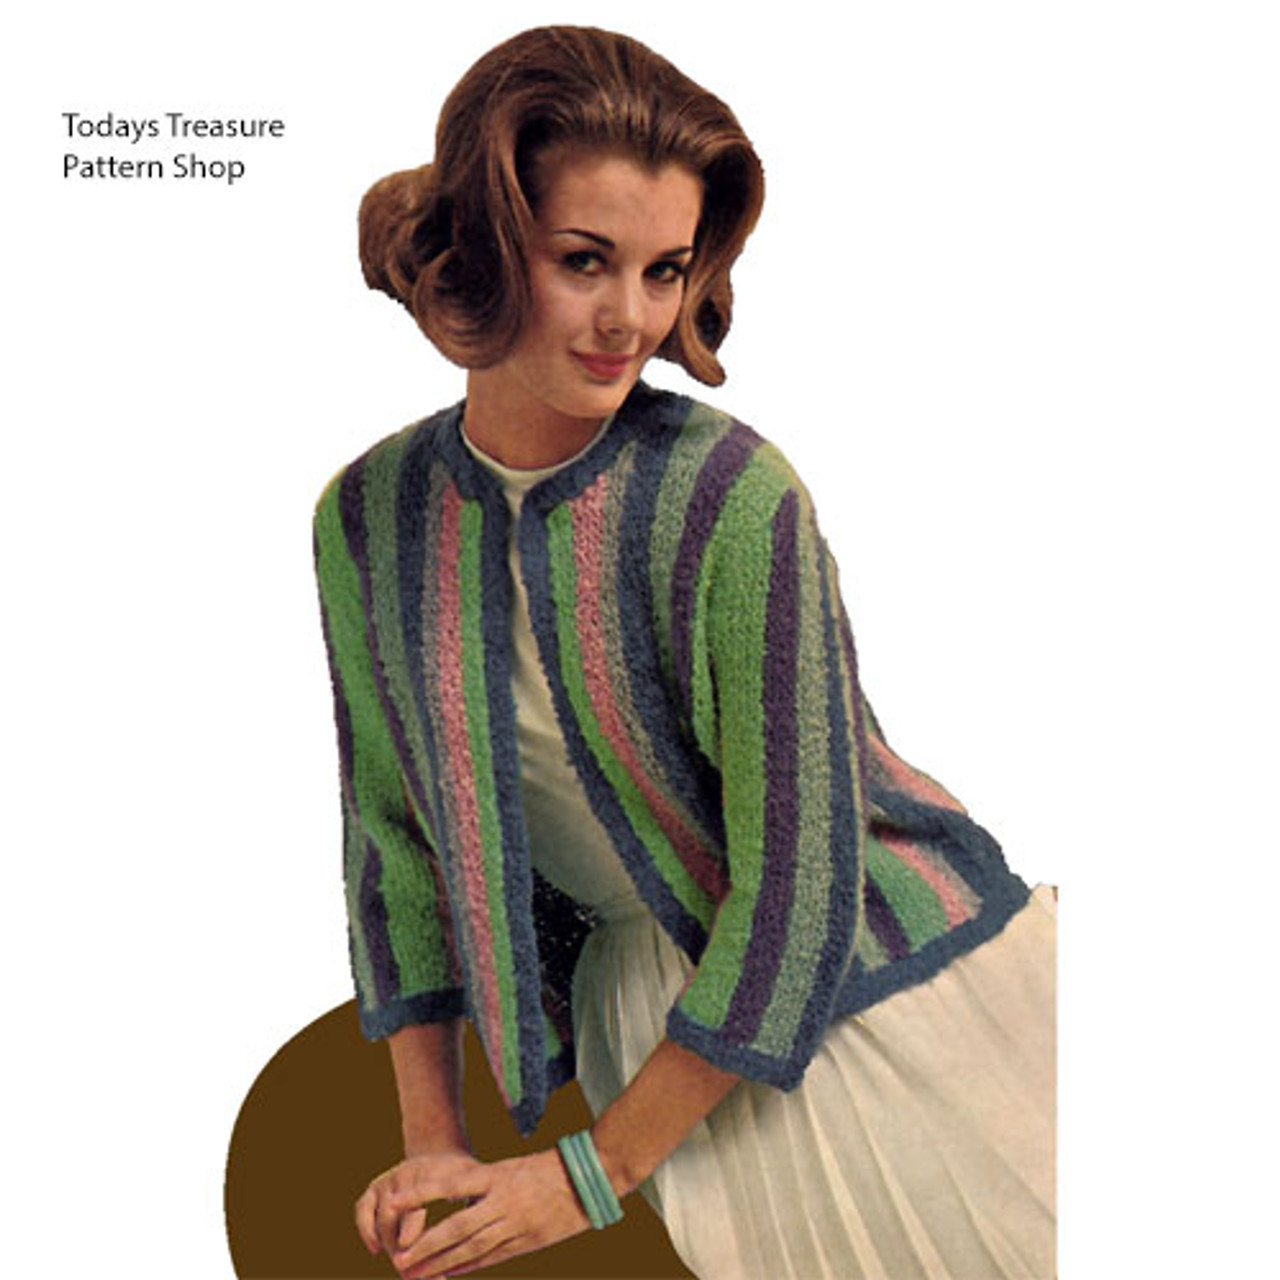 Knit Cardigan with Striped Bands